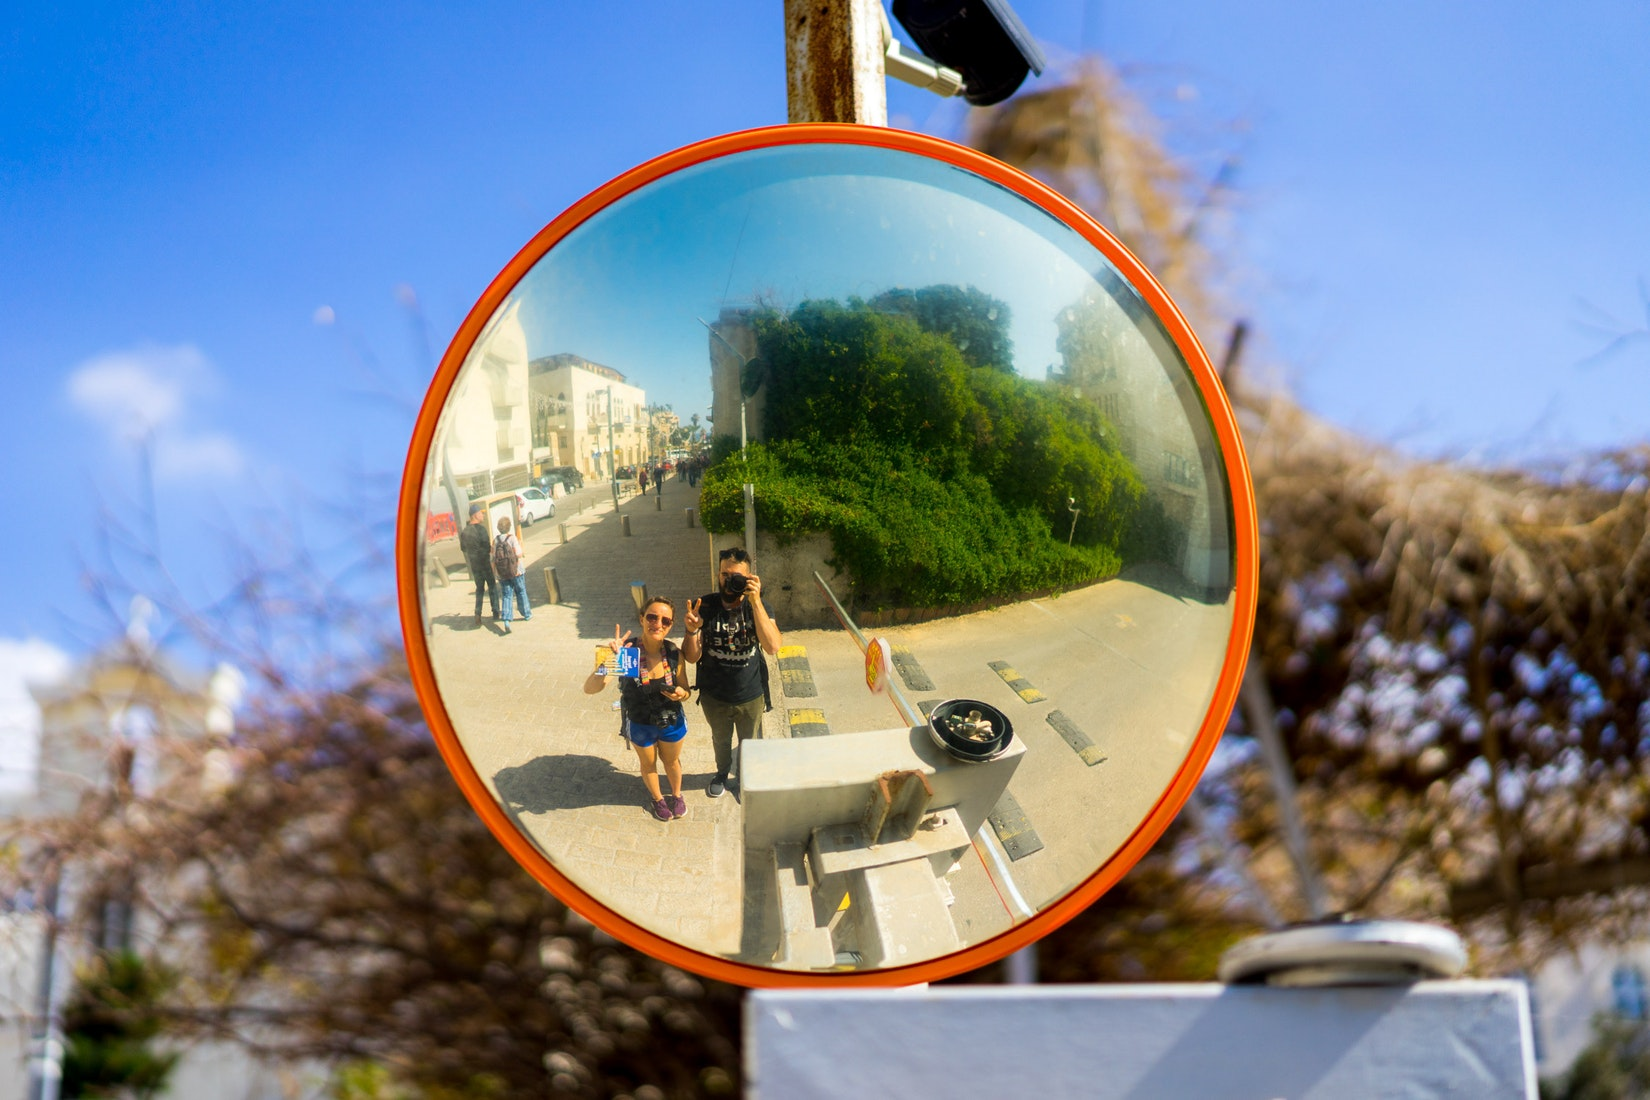 Becca and Dan taking a reflection selfie in a traffic mirror in Jaffa, Israel